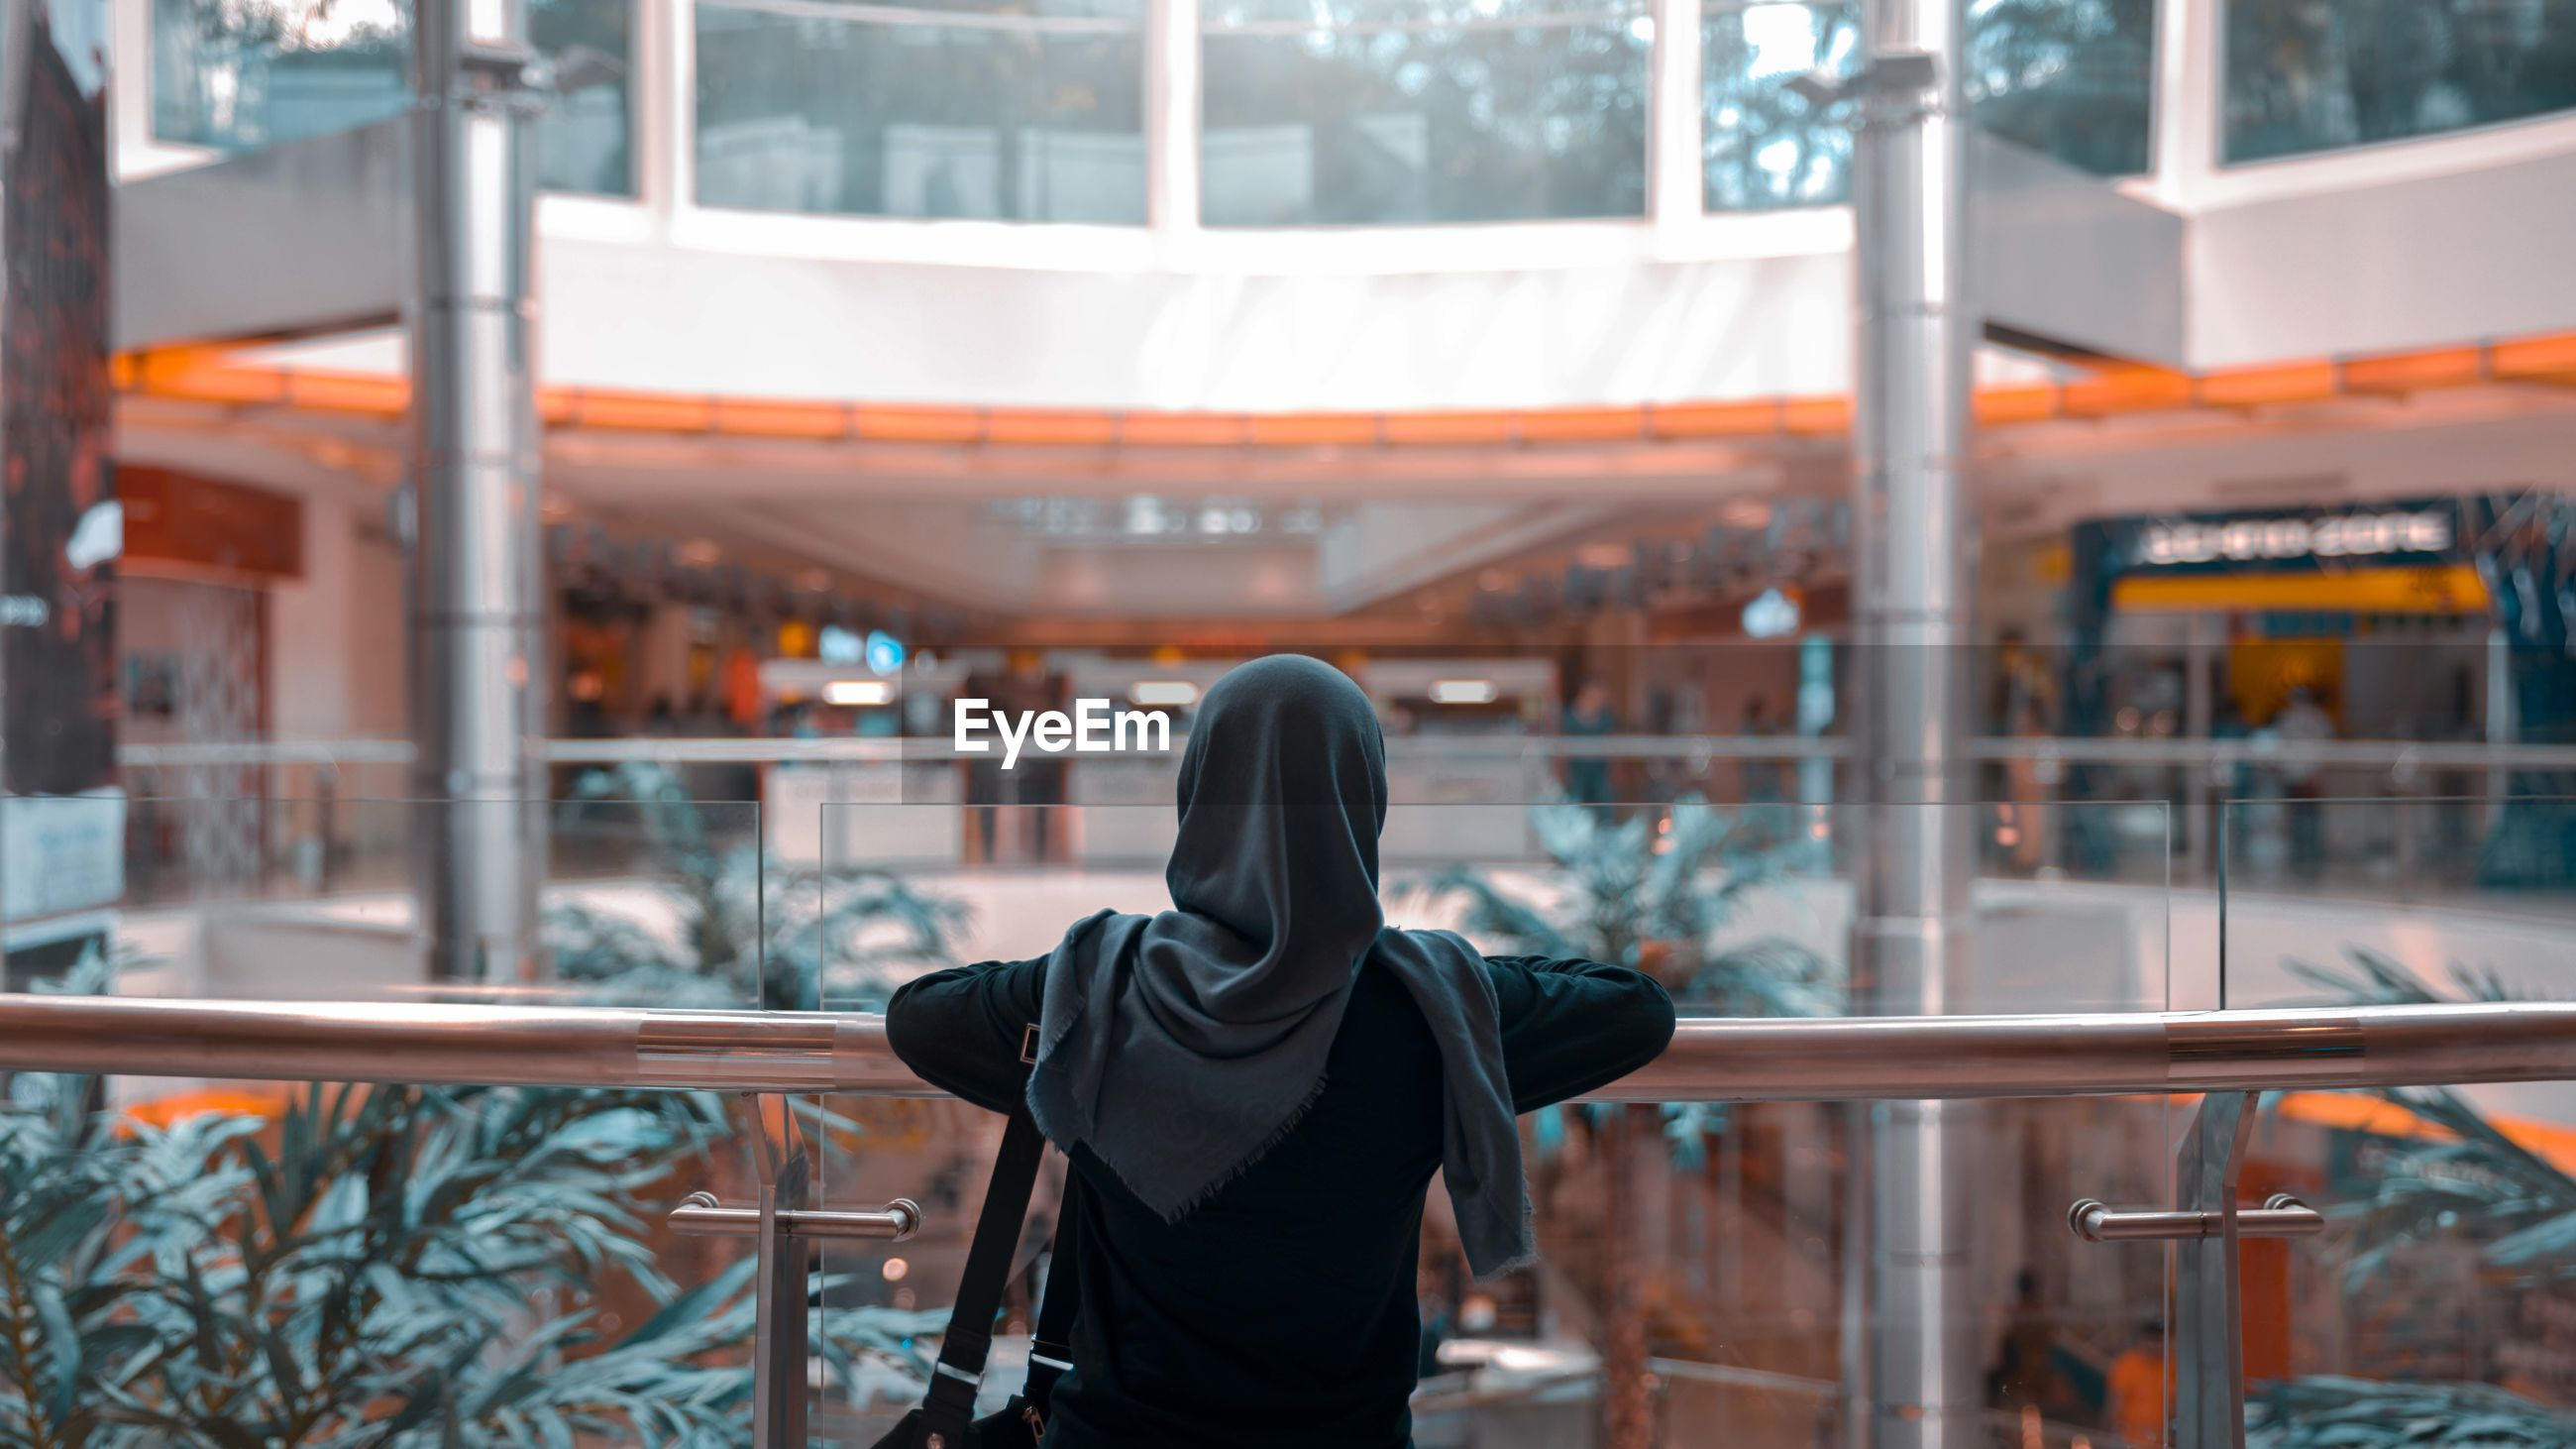 Rear view of woman in hijab standing at shopping mall